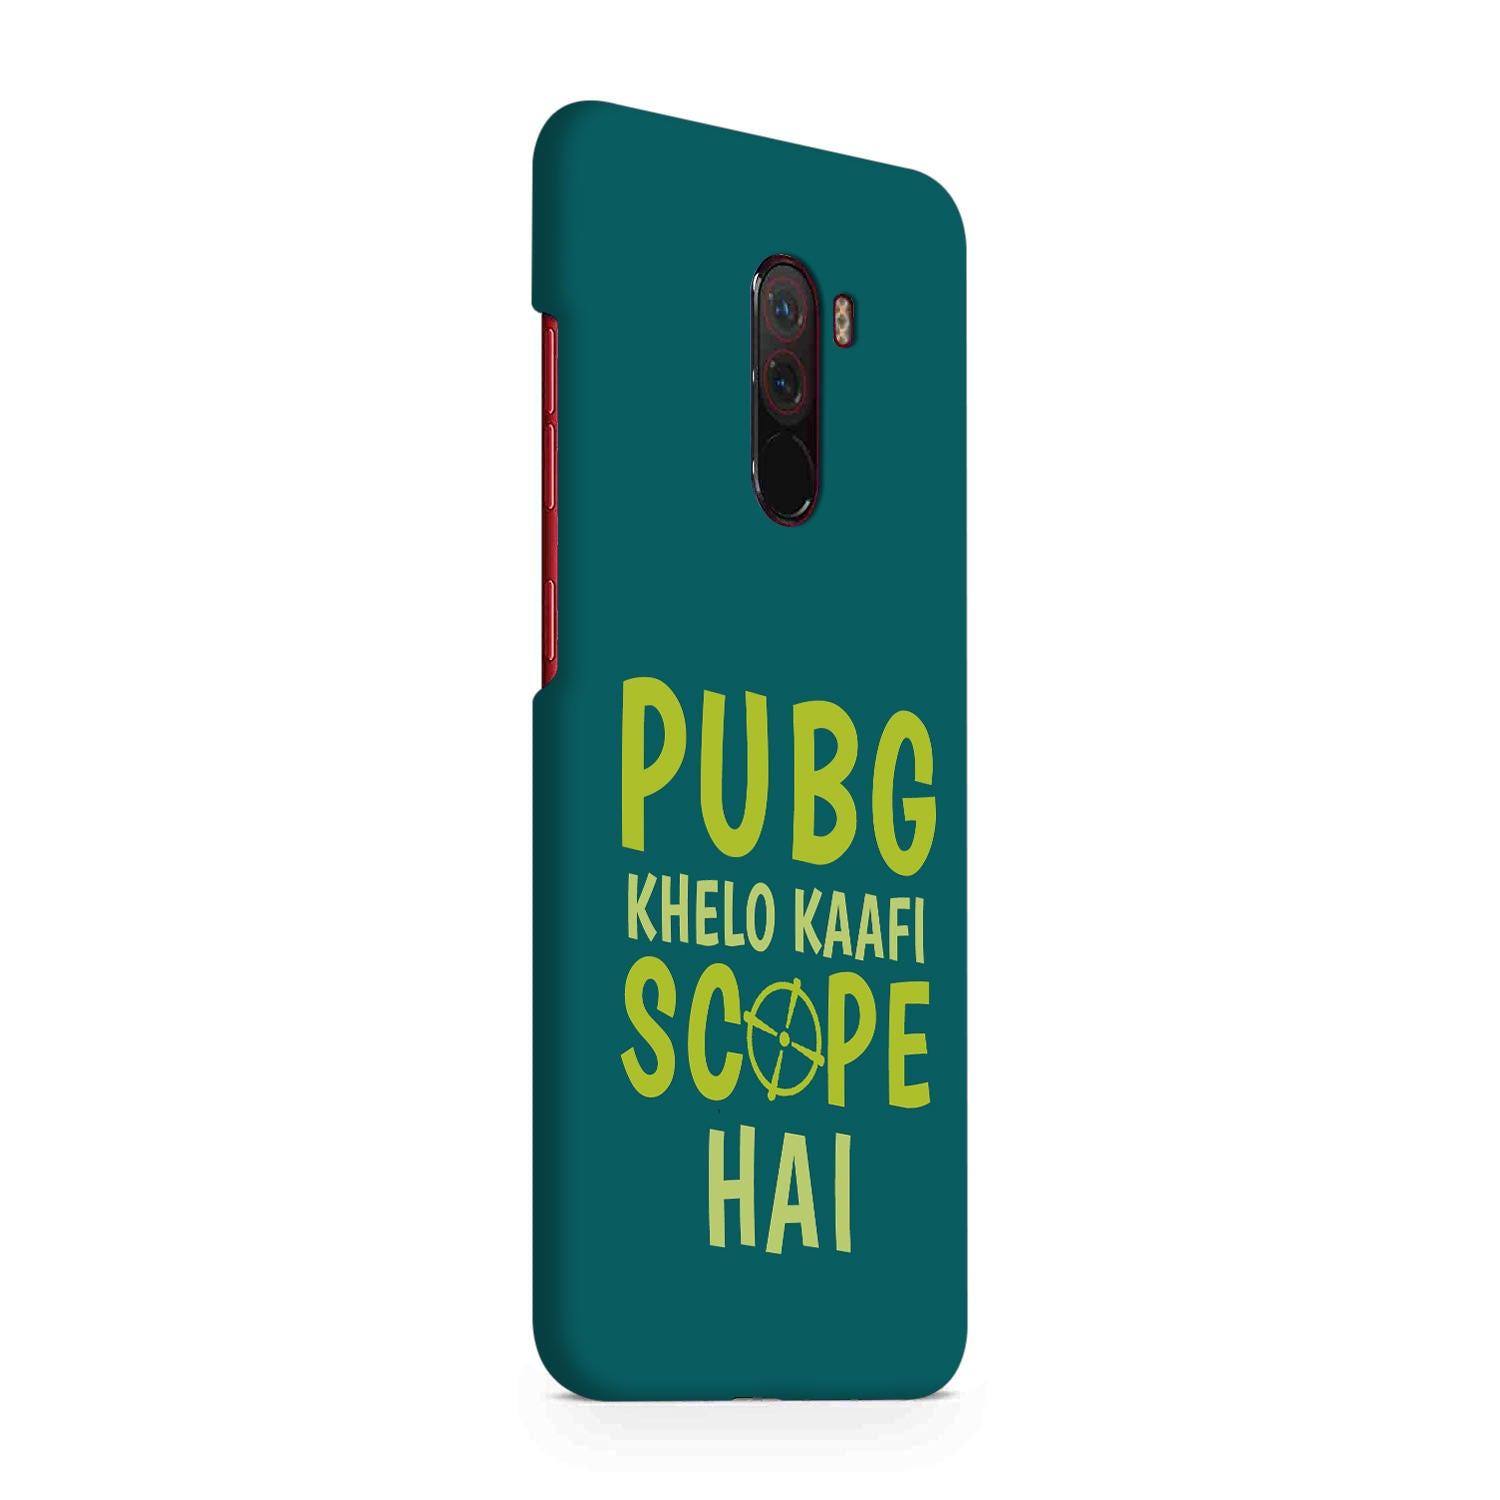 Pubg Khelo Kaafi Scope Hai Game Lovers Xiaomi Poco F1 Mobile Cover Case